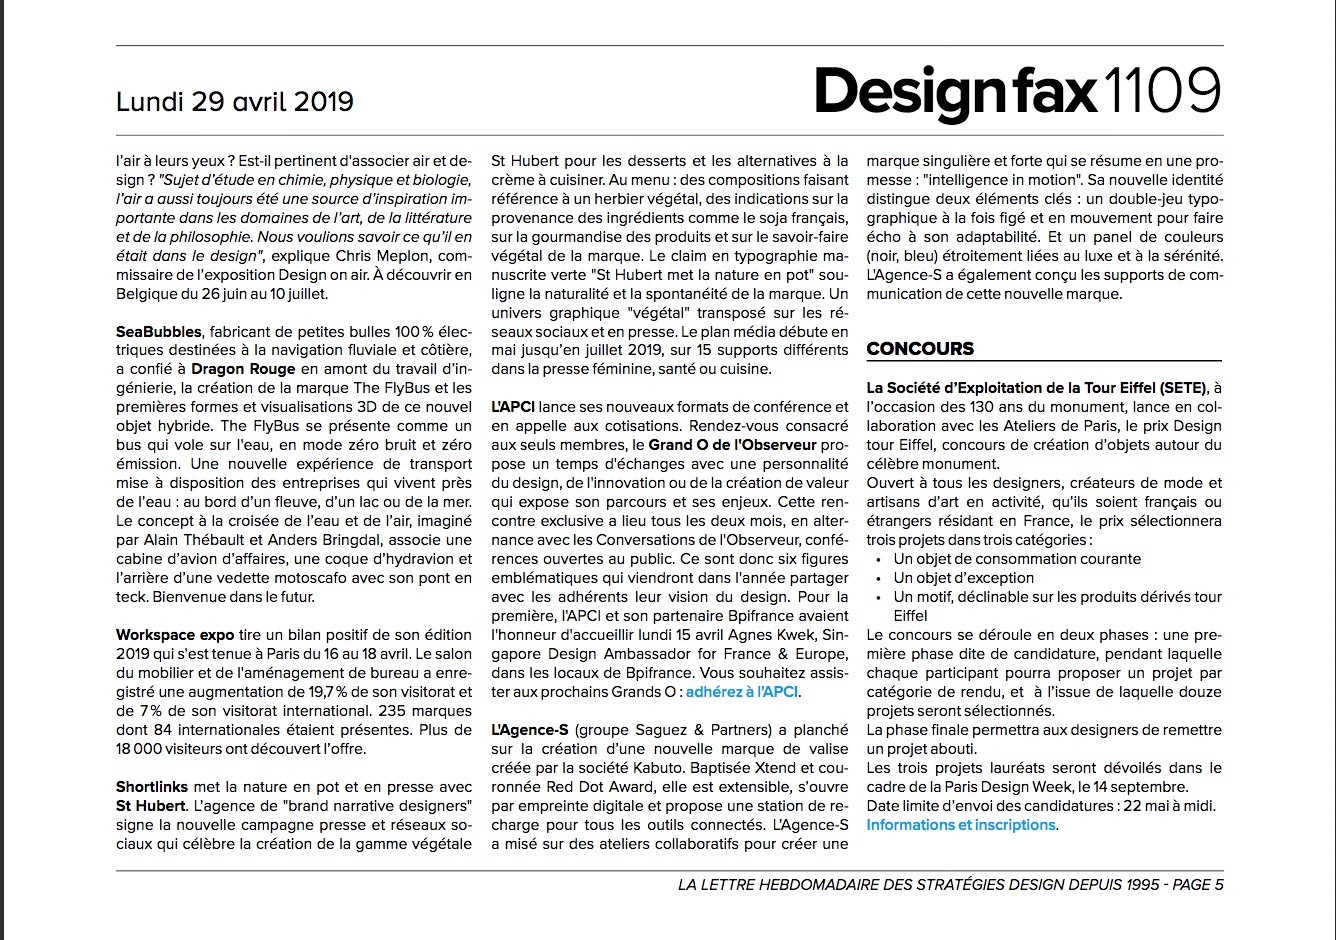 agence-s-design-fax-innovation